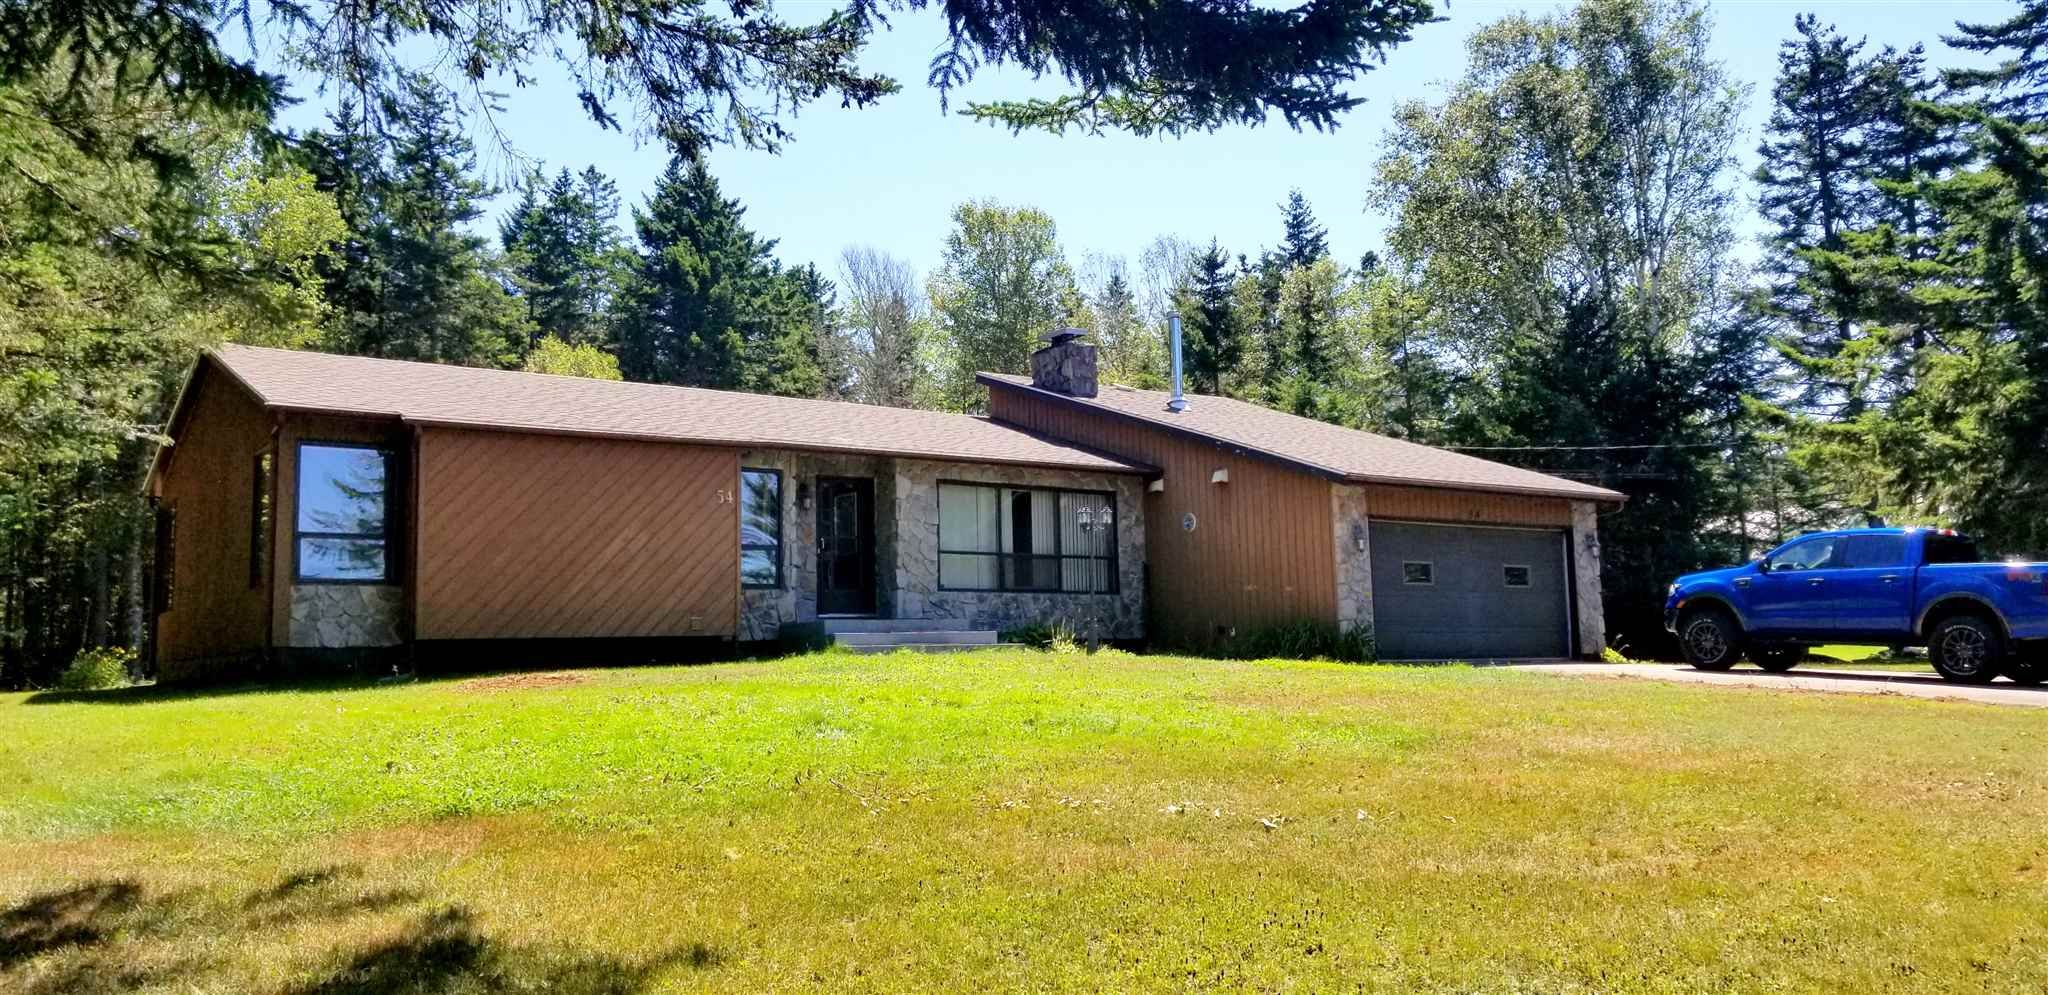 Main Photo: 54 Brookside Drive in East Amherst: 101-Amherst,Brookdale,Warren Residential for sale (Northern Region)  : MLS®# 202106413